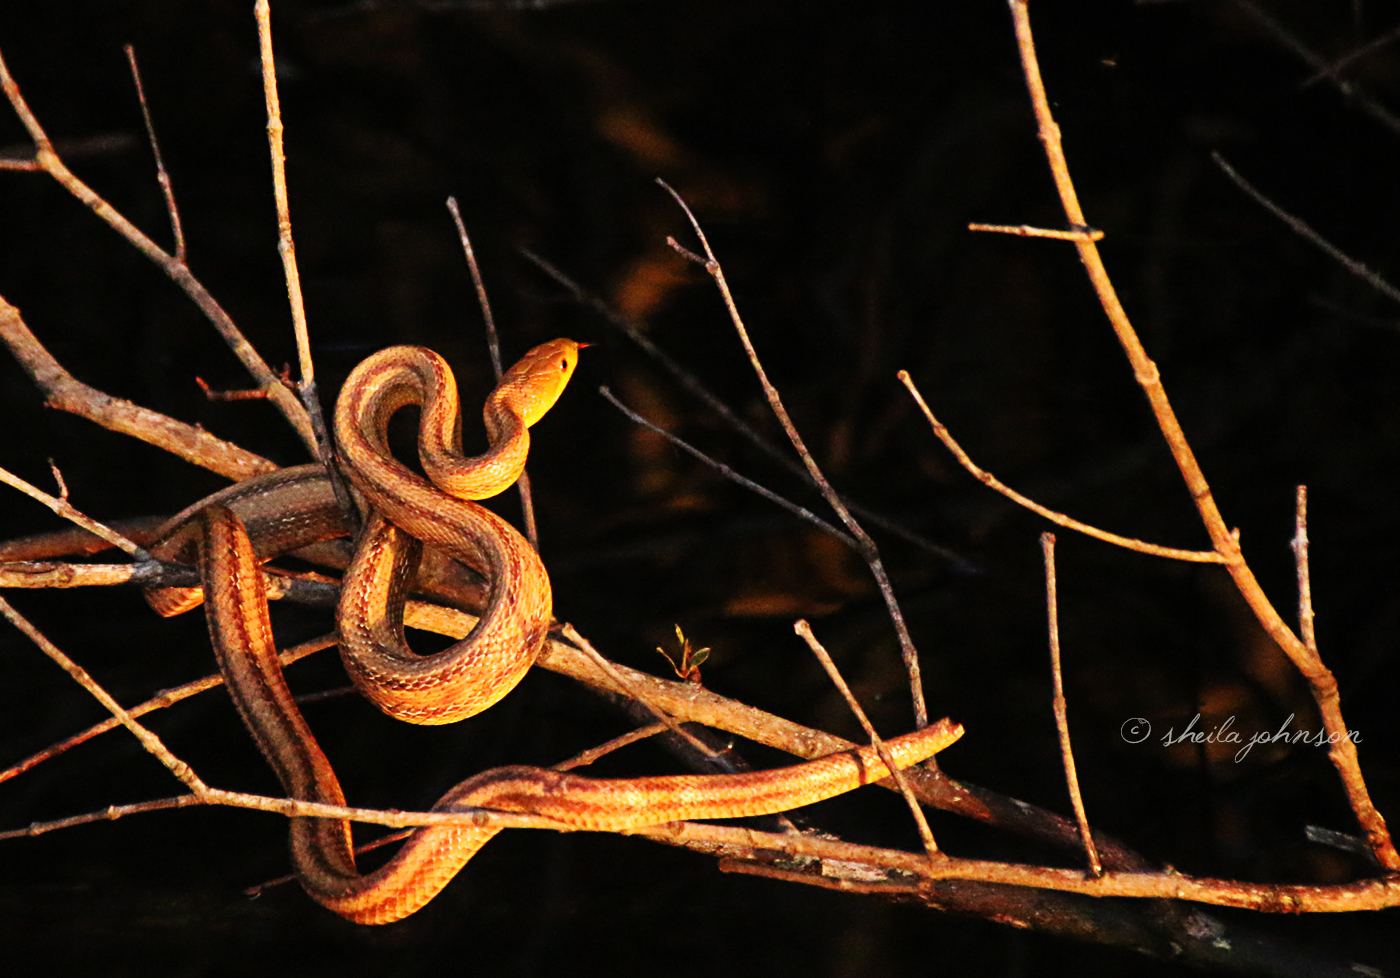 This Corn Snake Was Eager To Get A Taste Of A Little Mouse Who Had Made Her Home In A Nearby Branch. The Little Mouse Was, However, Protecting Her Babies, And Defending Her Little Nest Like A Bear. She Actually Bit The Snake, And It Went Slithering Away.